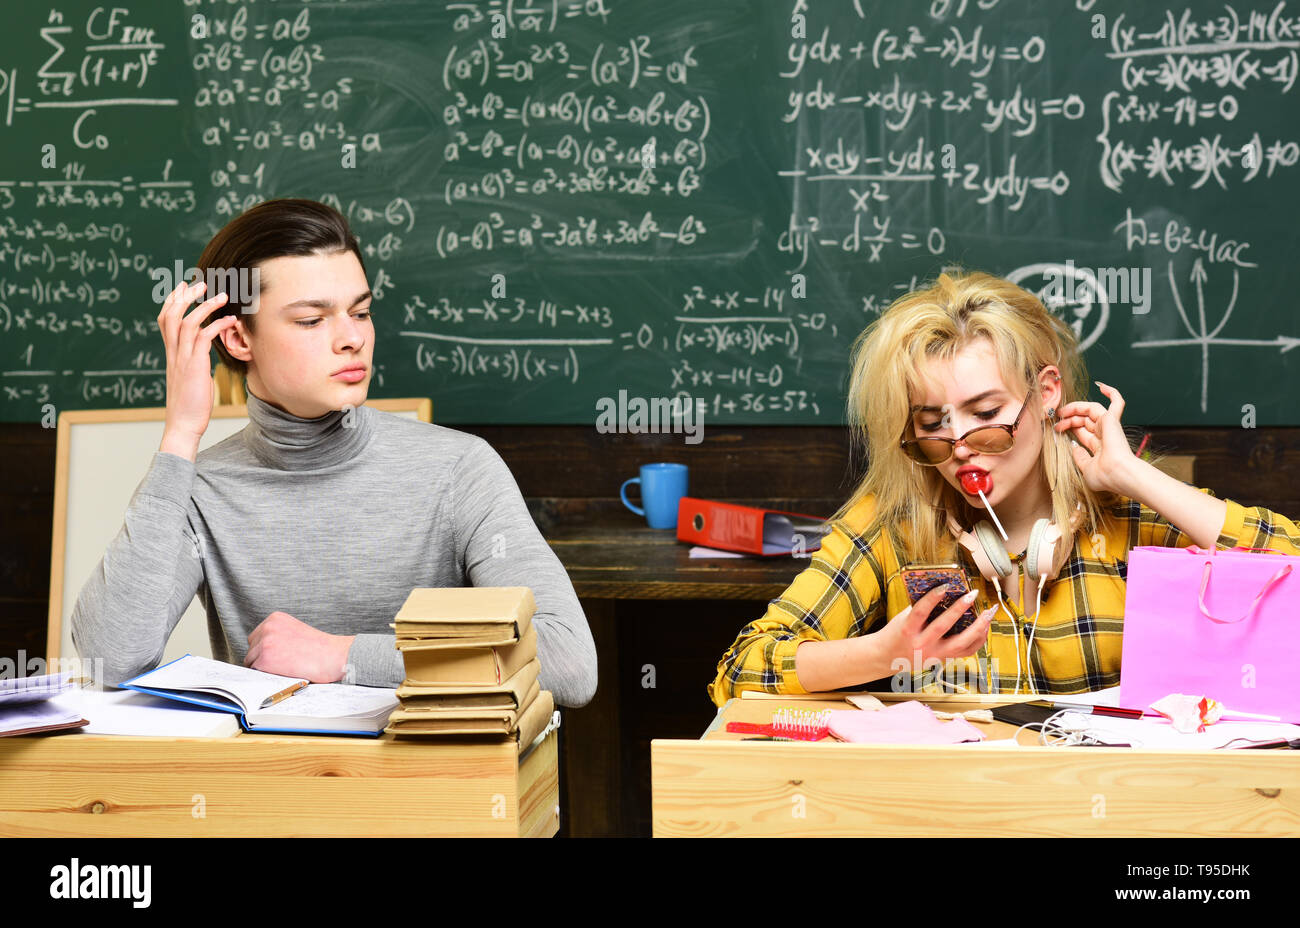 Tutors fill different role than teachers and parents. Old books on a round wooden table. Confident student studying for exam at desk with laptop - Stock Image